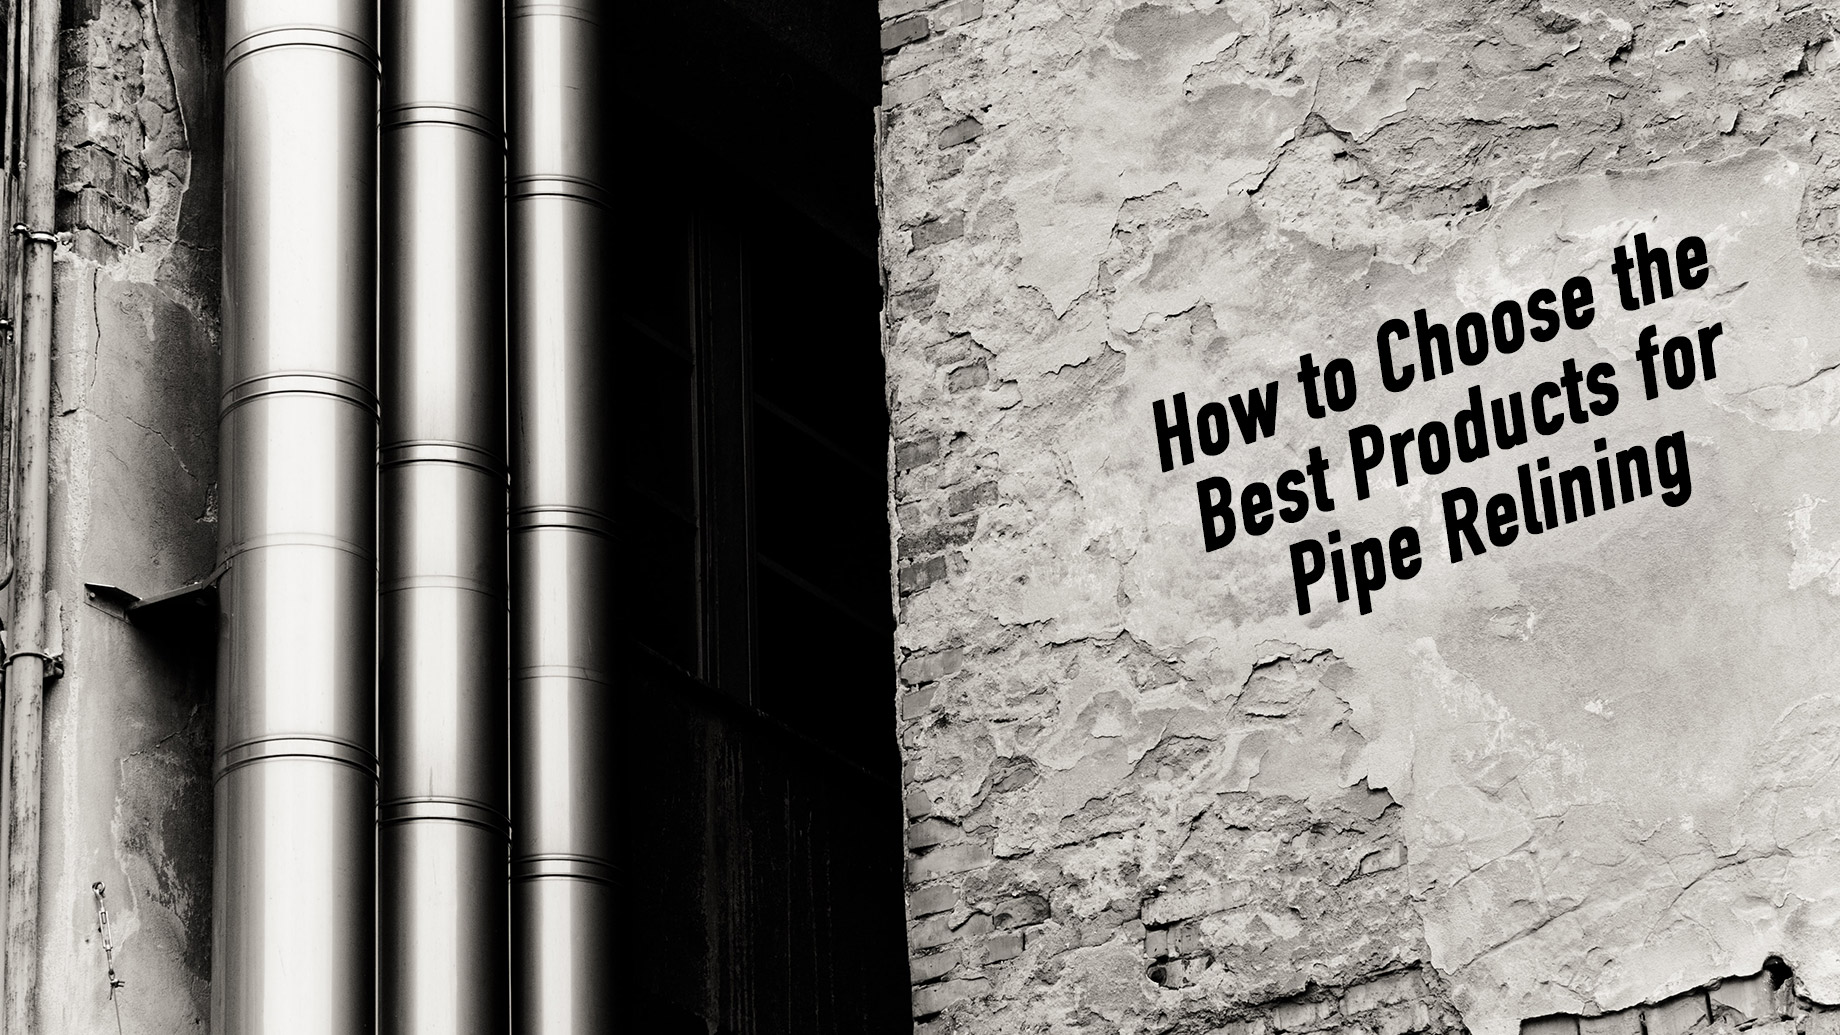 How to Choose the Best Products for Pipe Relining